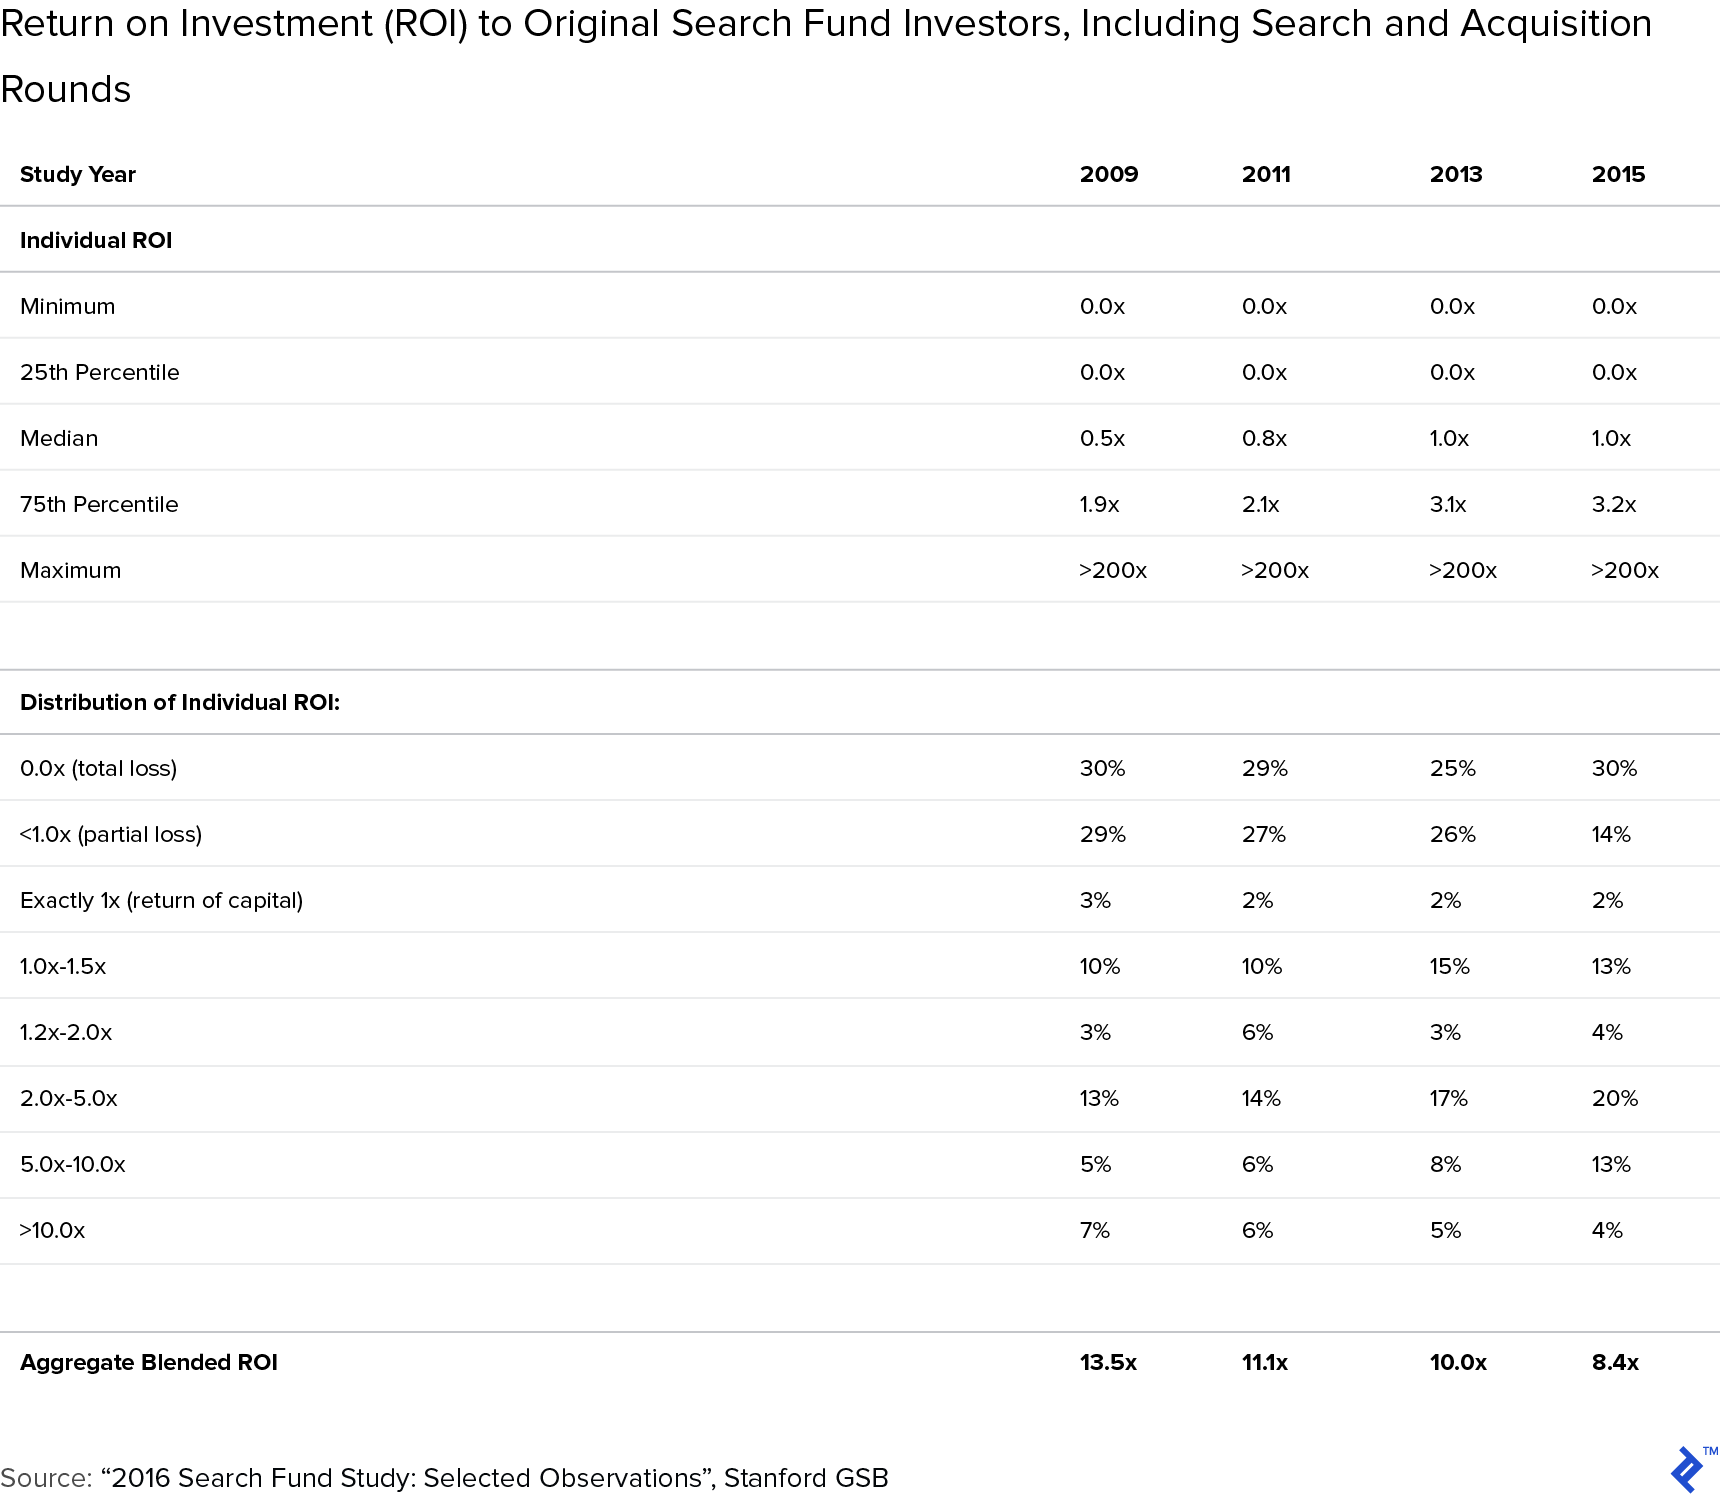 Table: ROI to Original Search Fund Investors